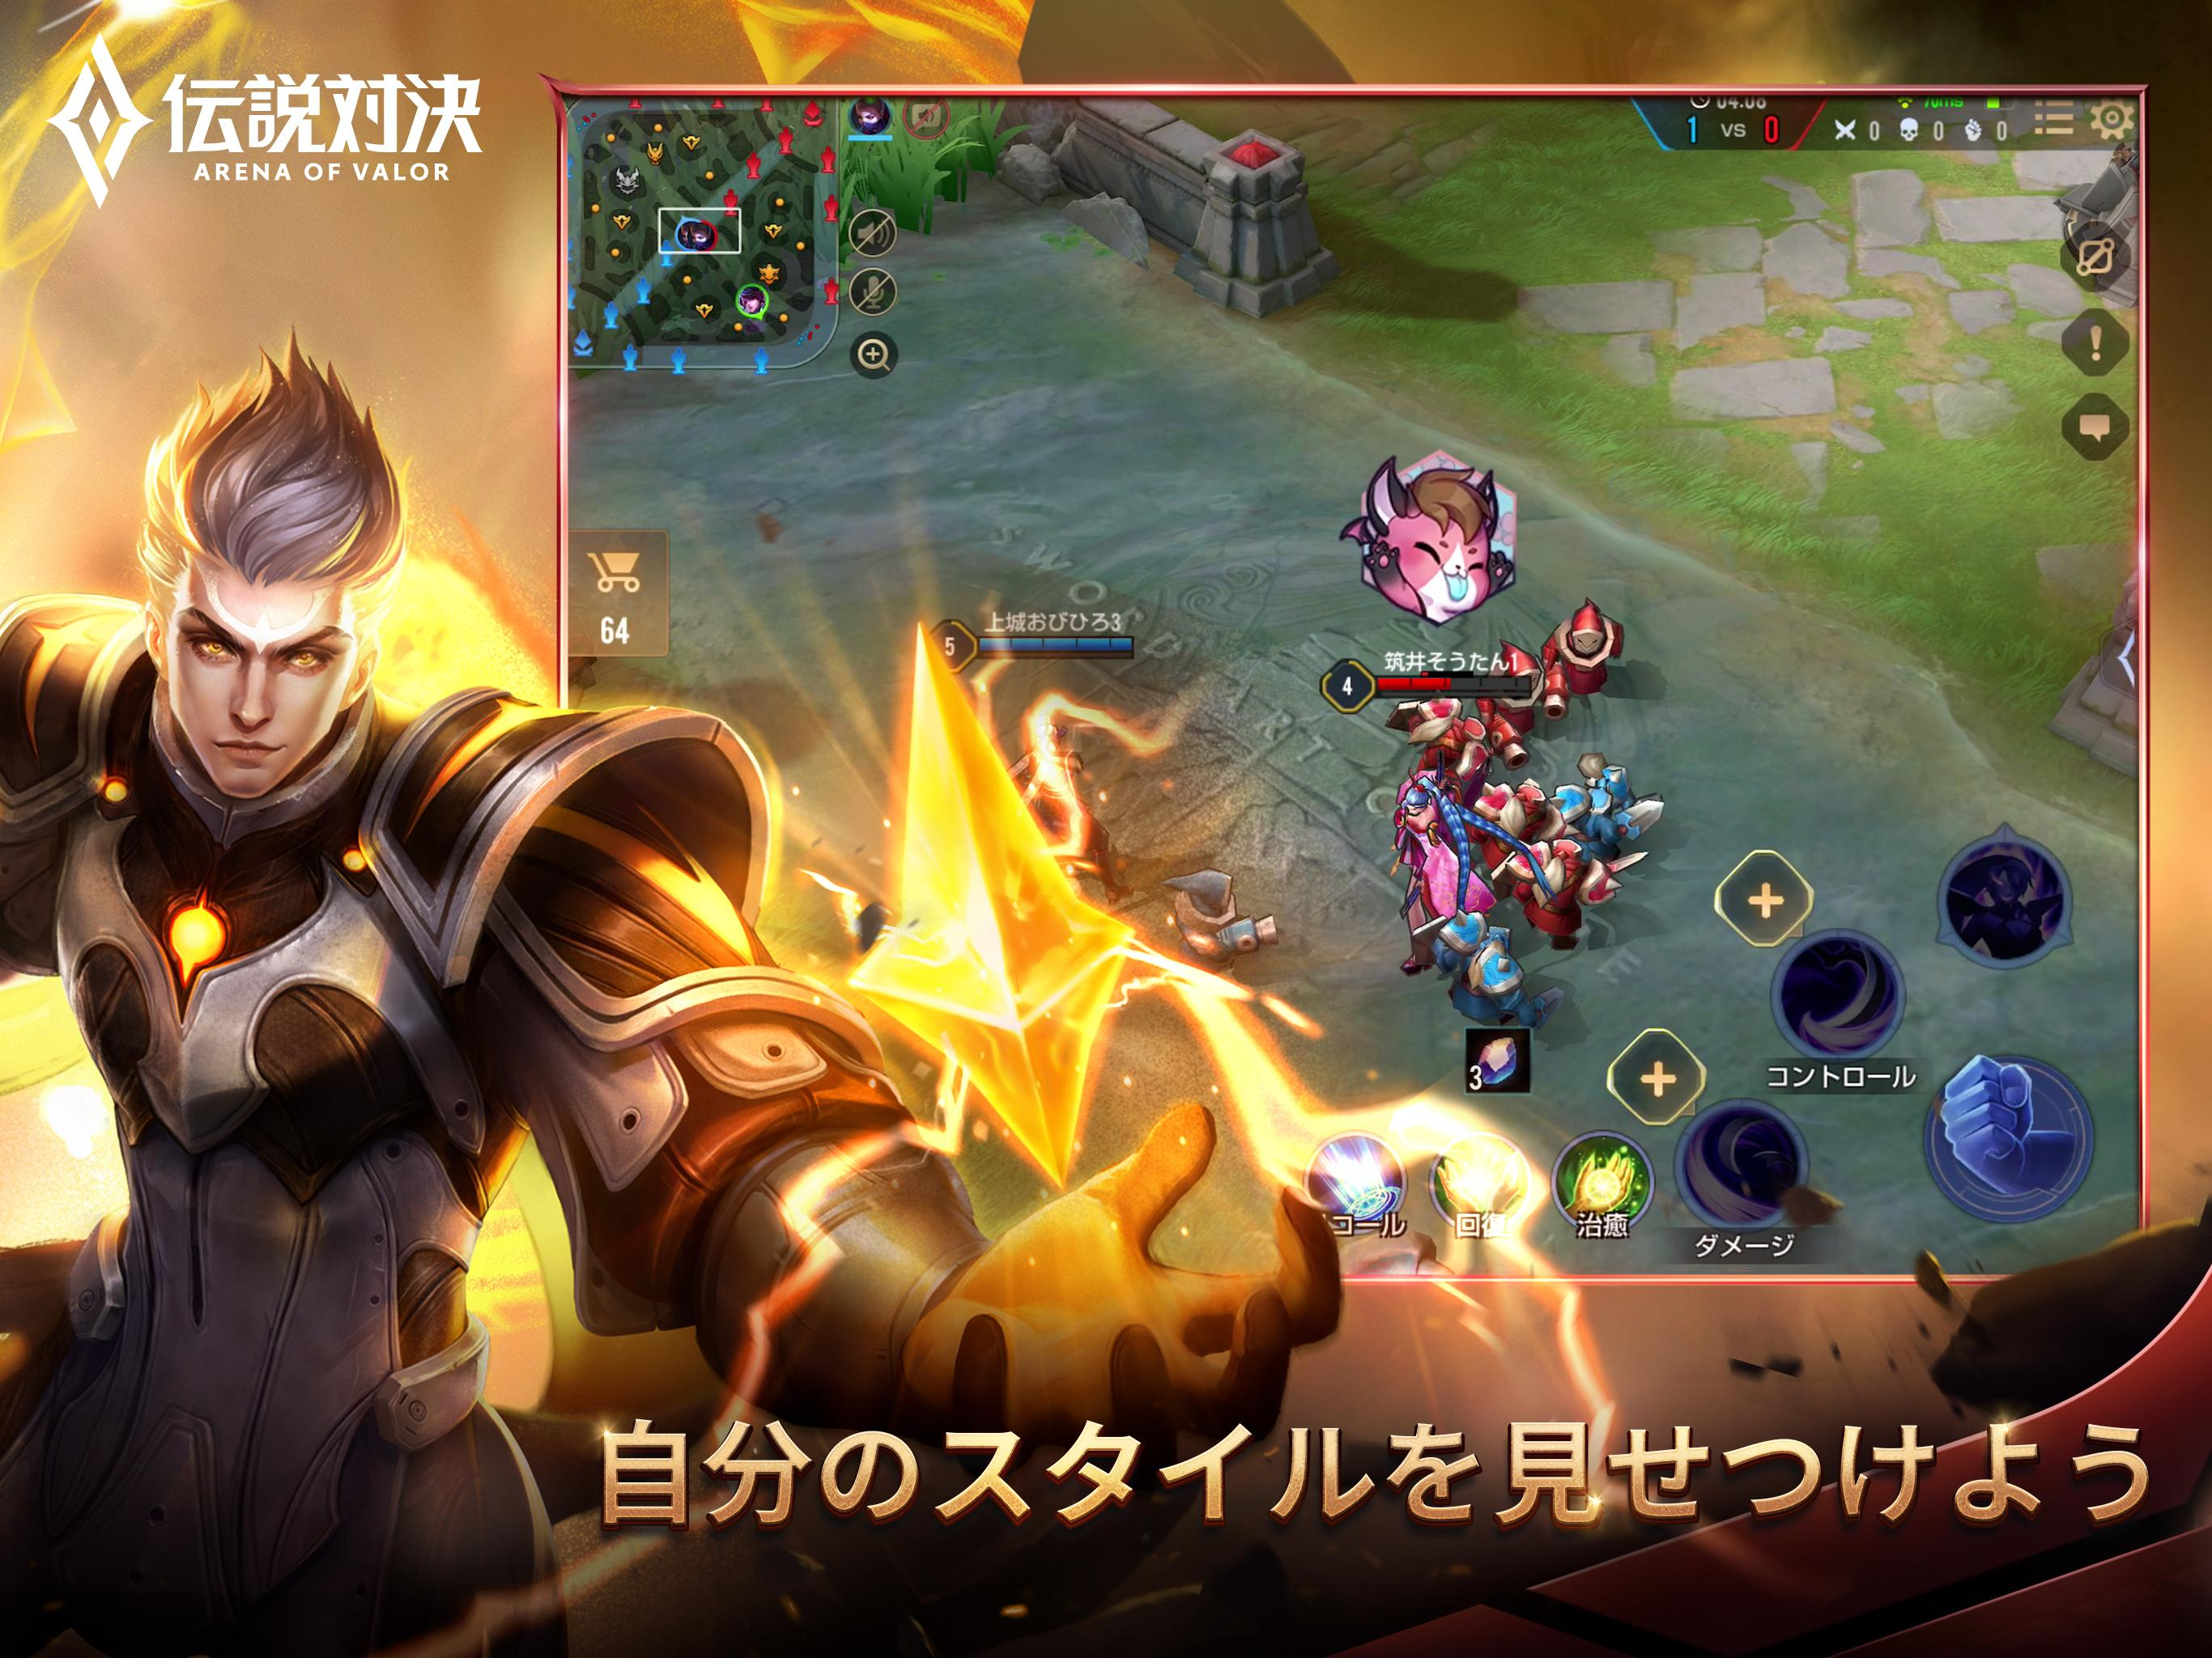 伝説対決 Arena of Valor 1.36.1.8 Screenshot 15